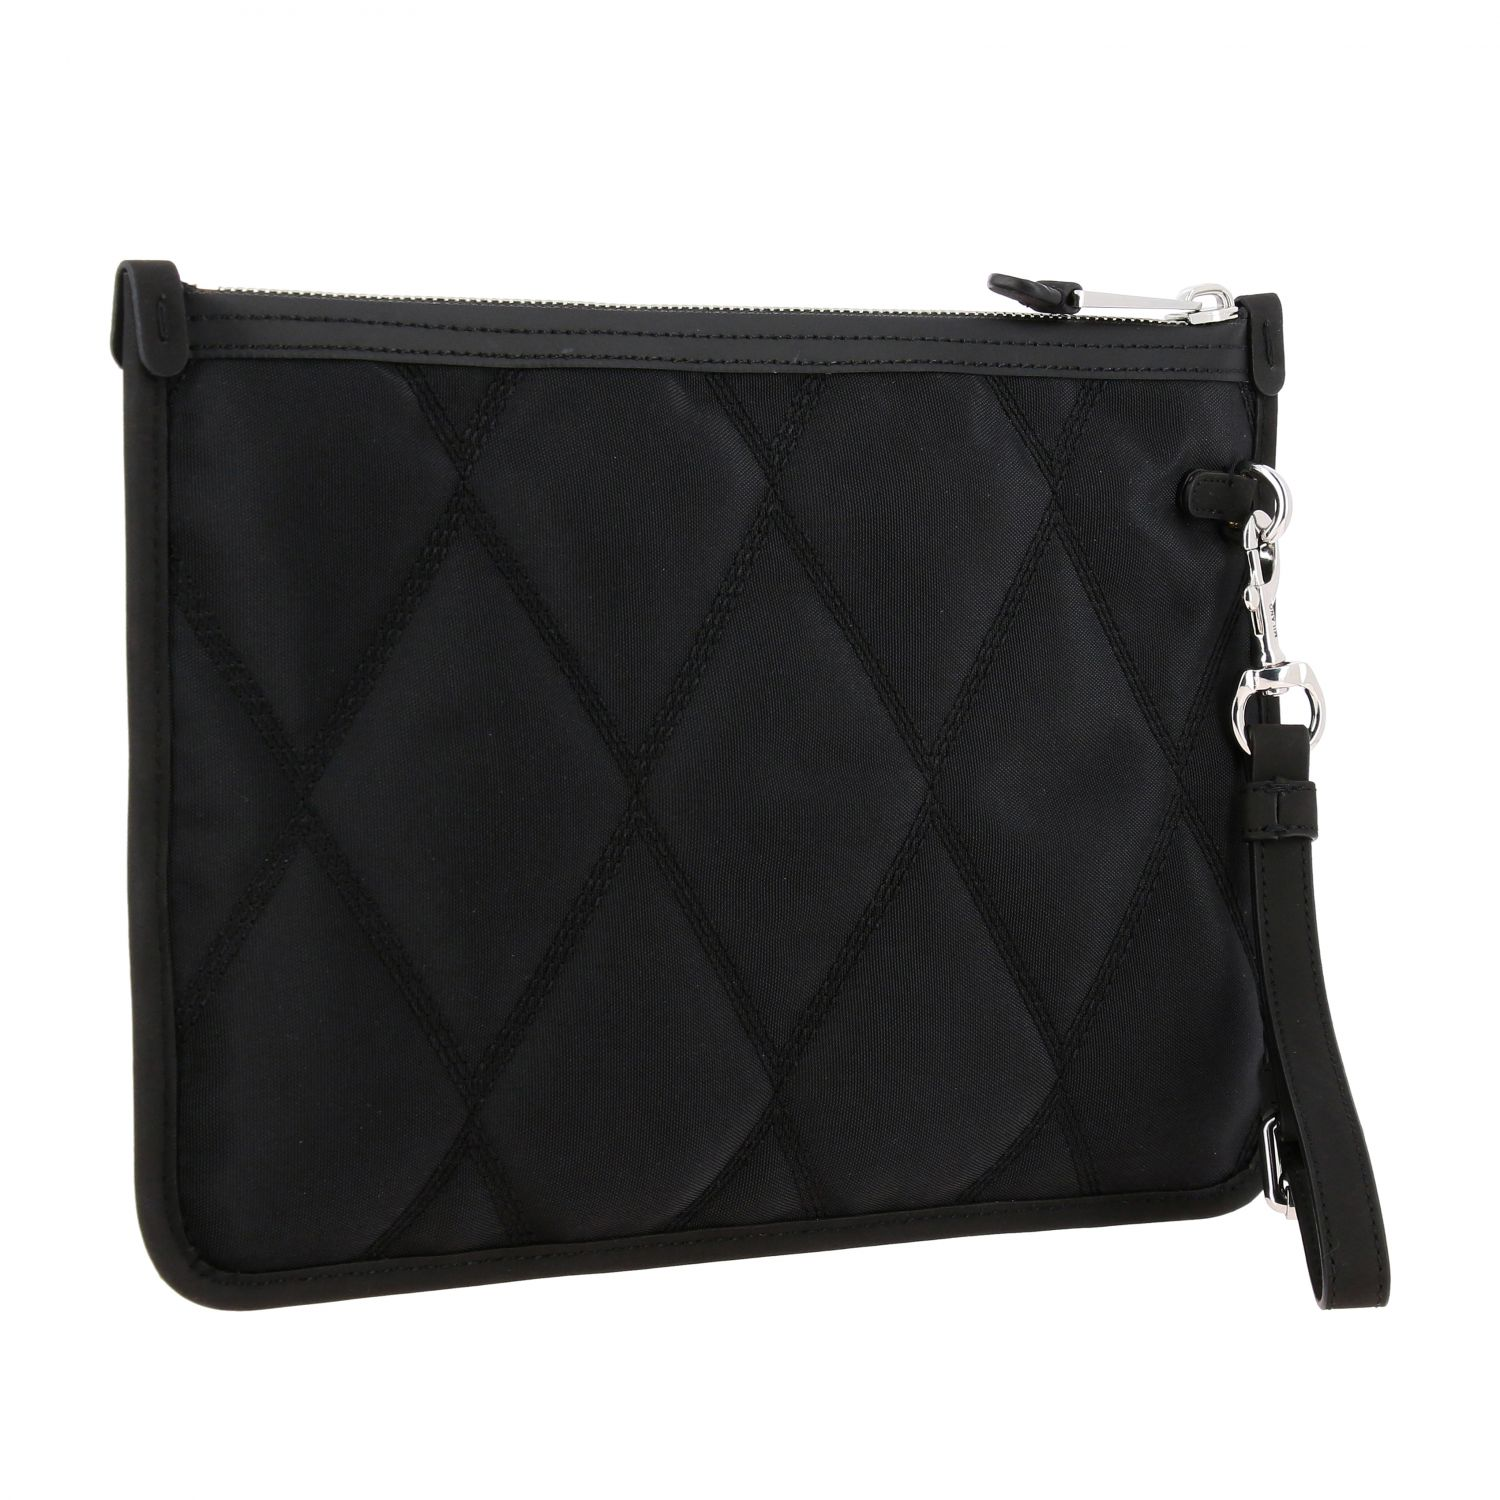 Moschino Couture nylon clutch with laminated logo black 3